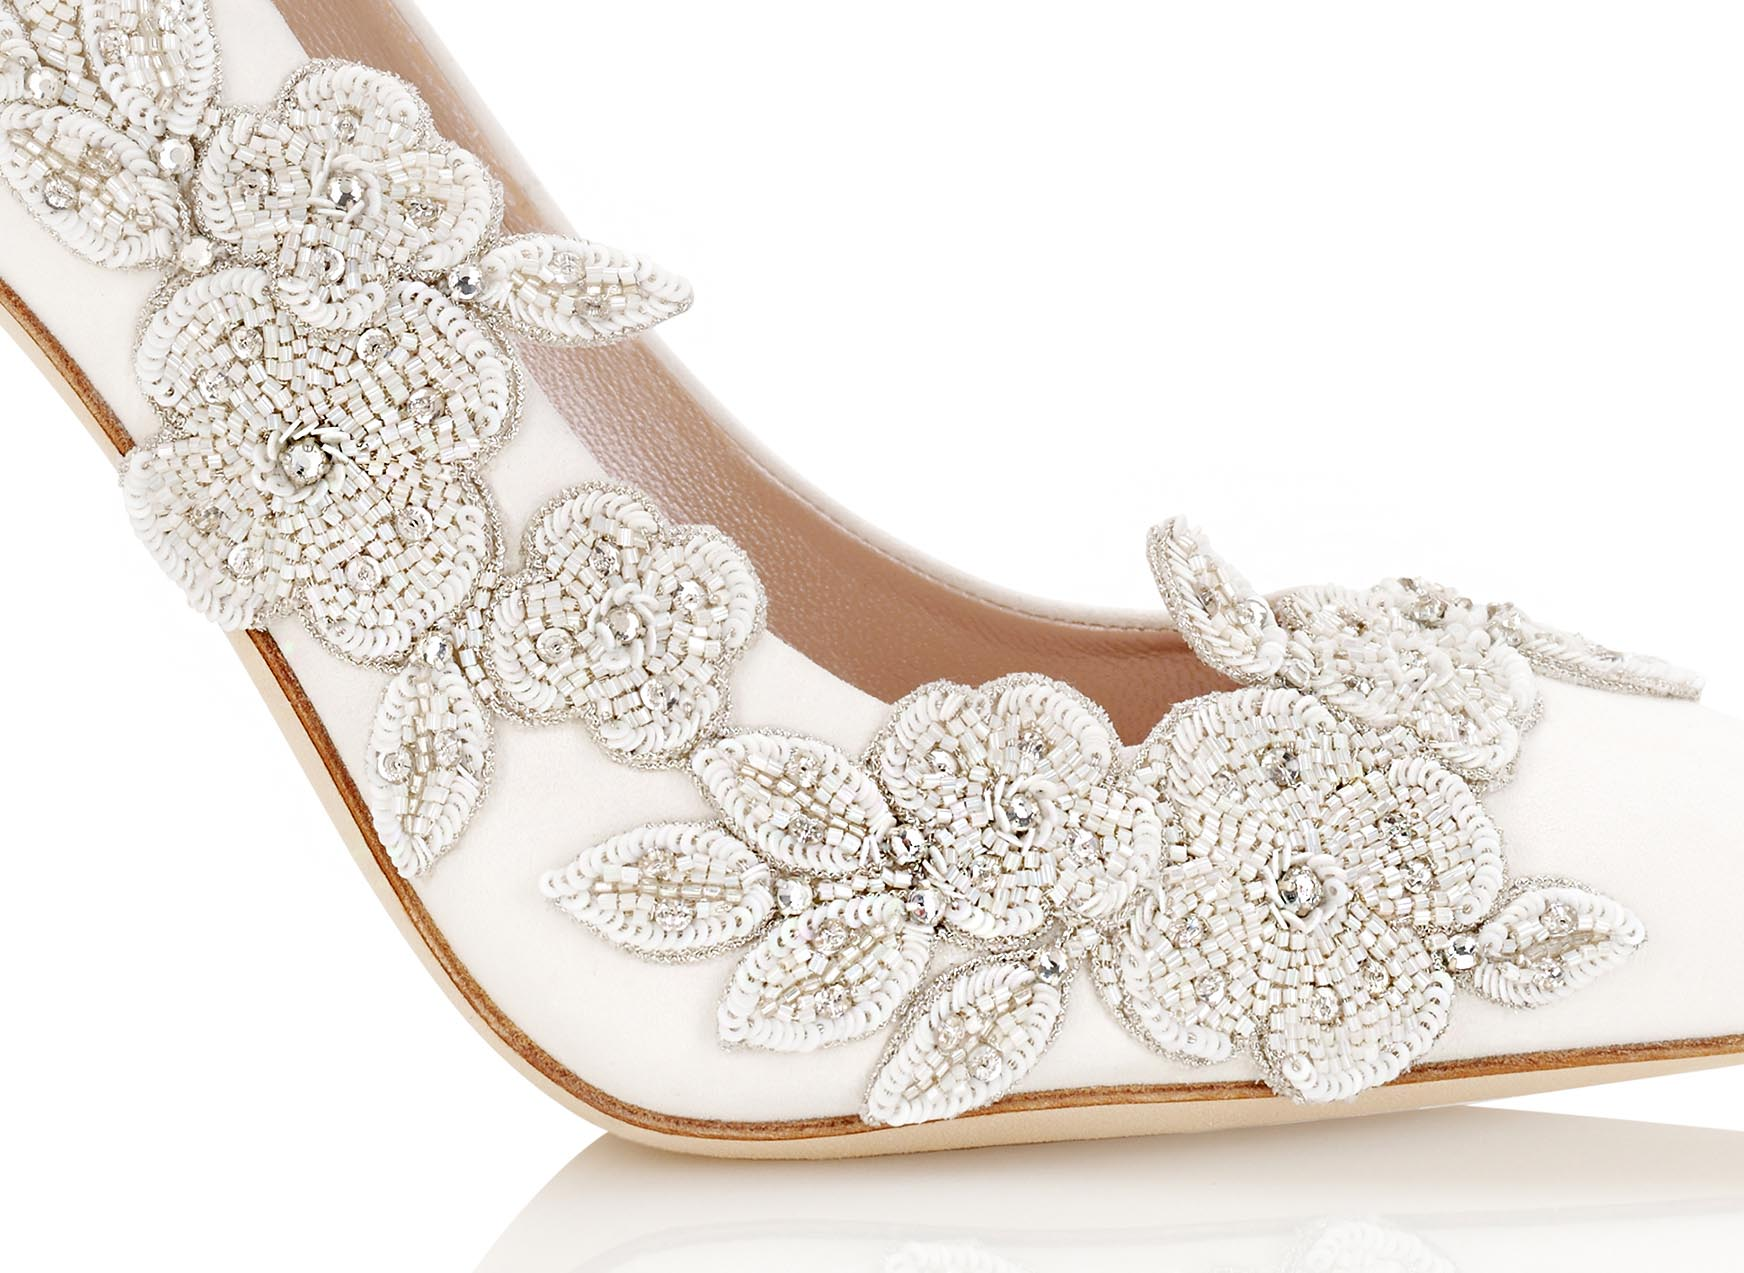 Isadora Ivory Bridal Shoes Close Up of Floral Details By Emmy London